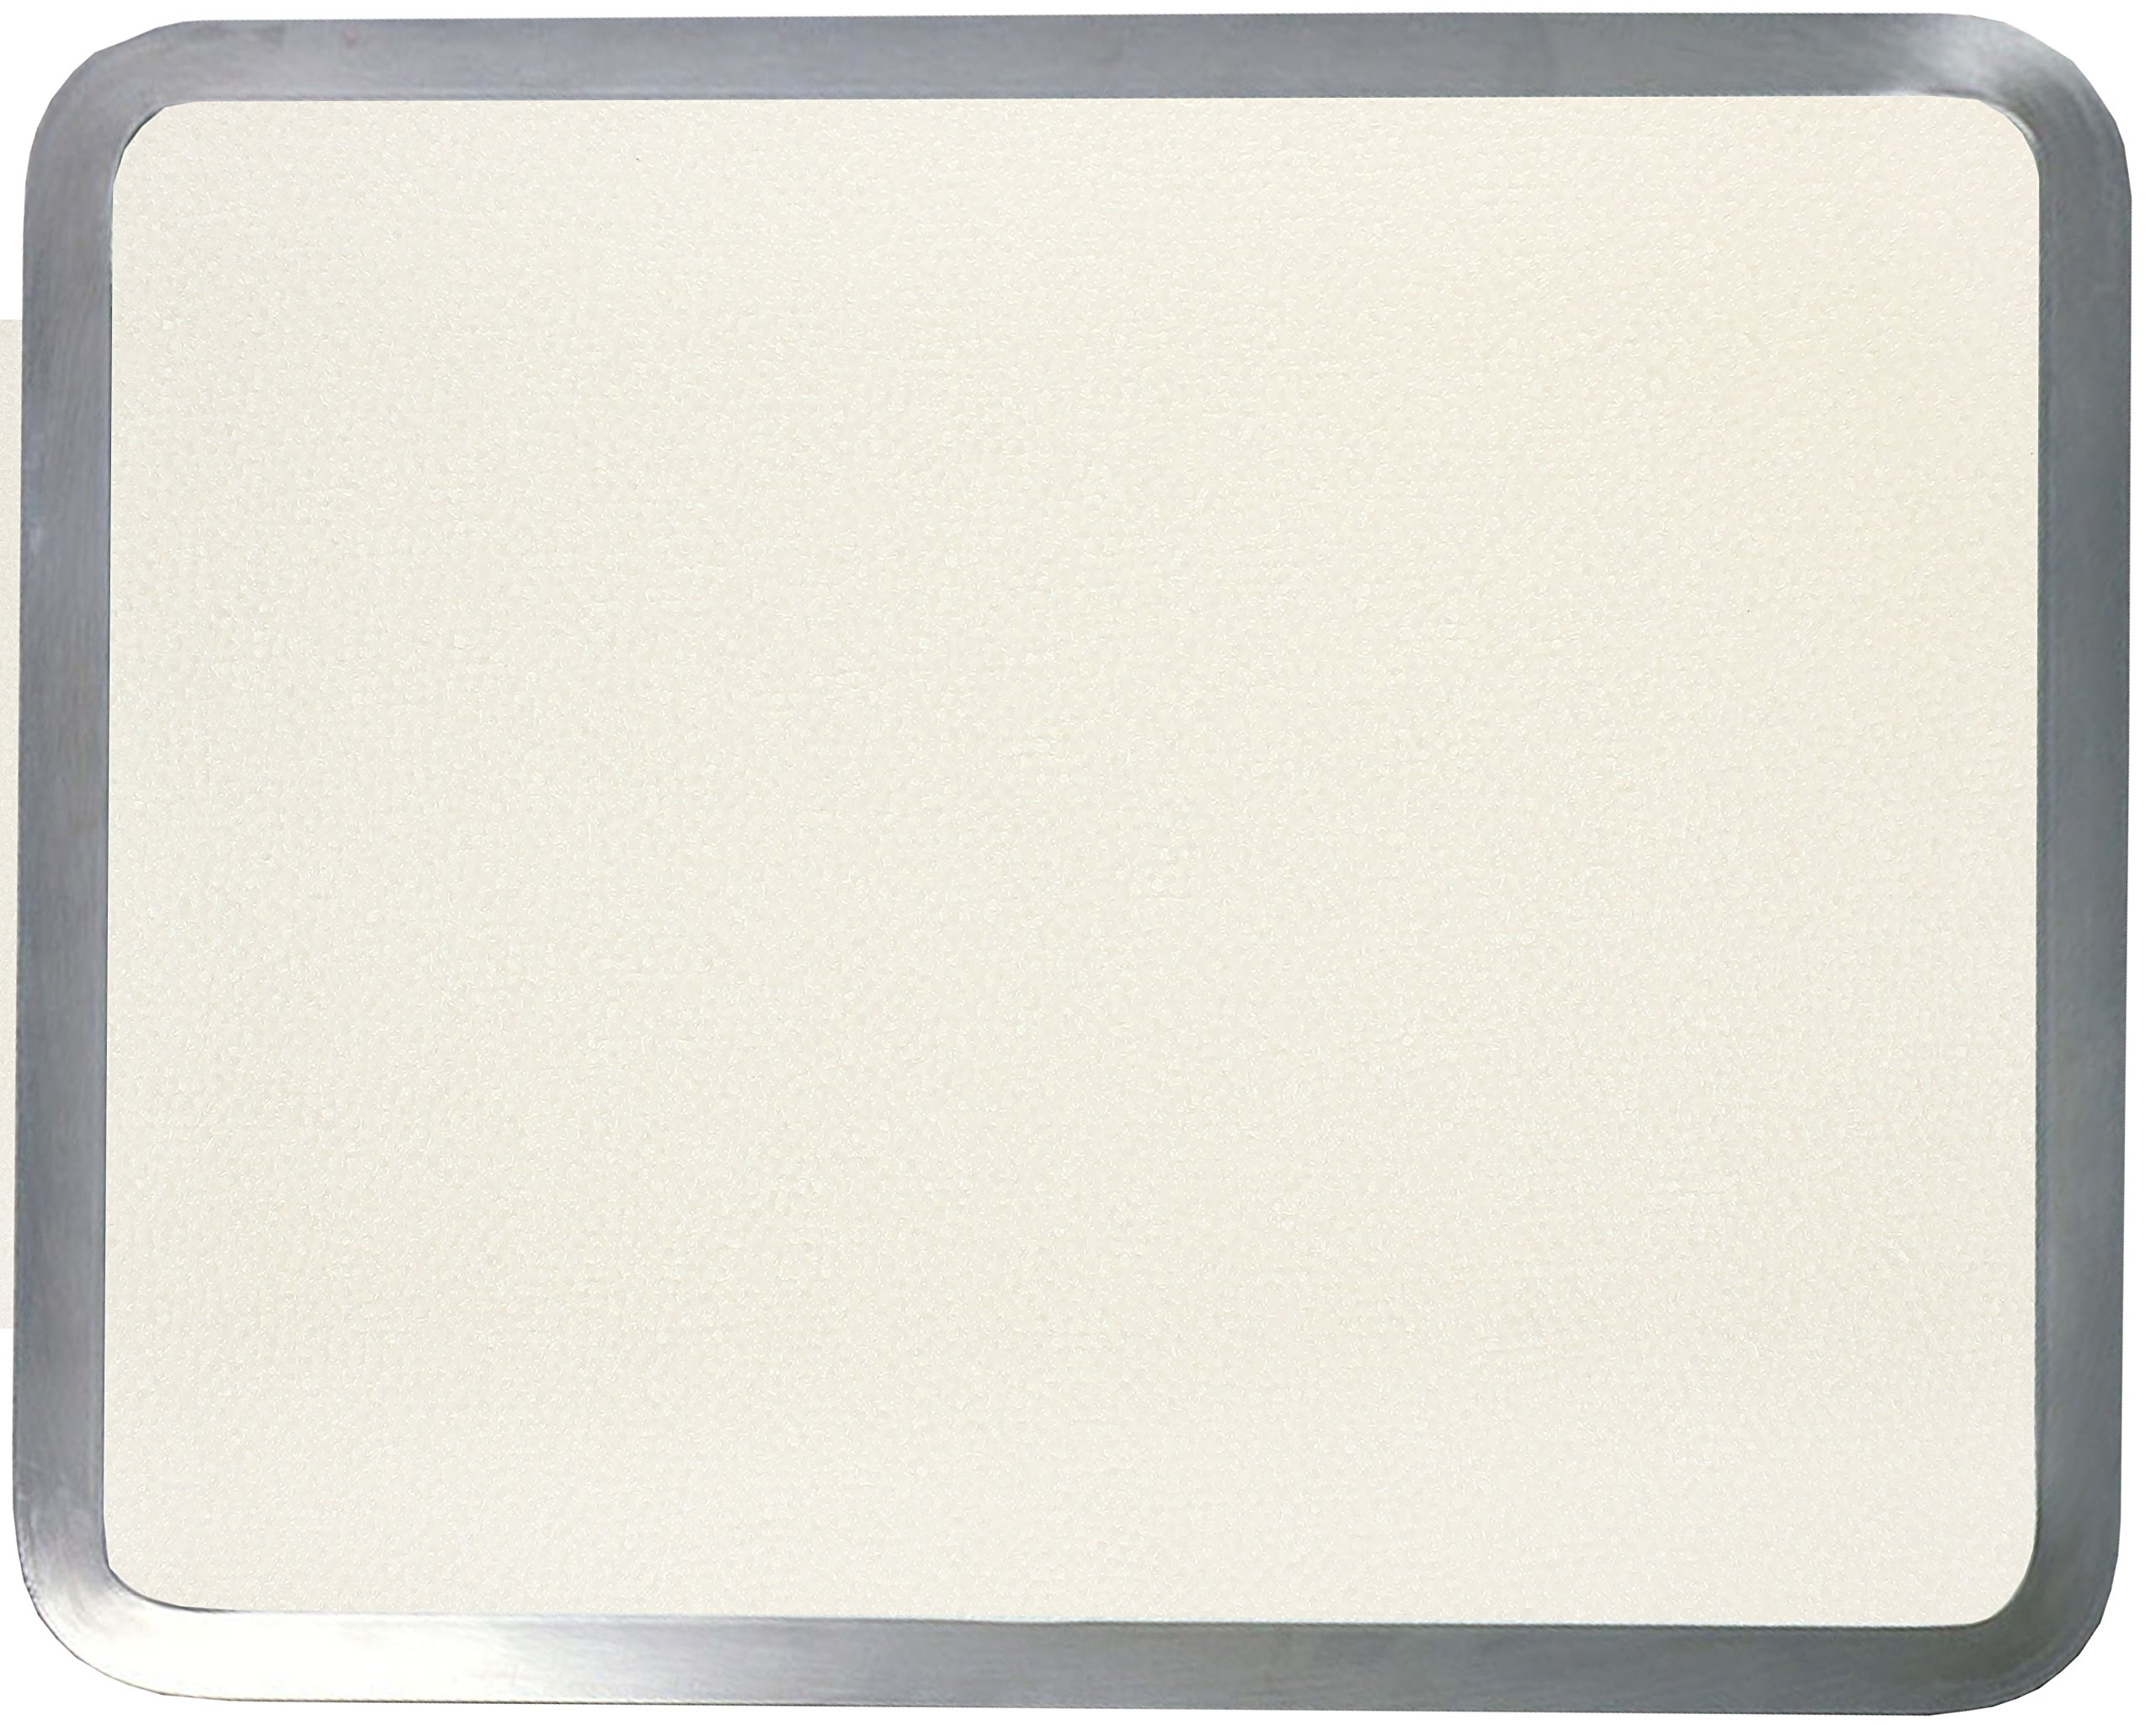 Vance Surface Saver 71215AL 12 X 15'' Almond Built-in Surface Saver Tempered Glass Cutting Board, Almond